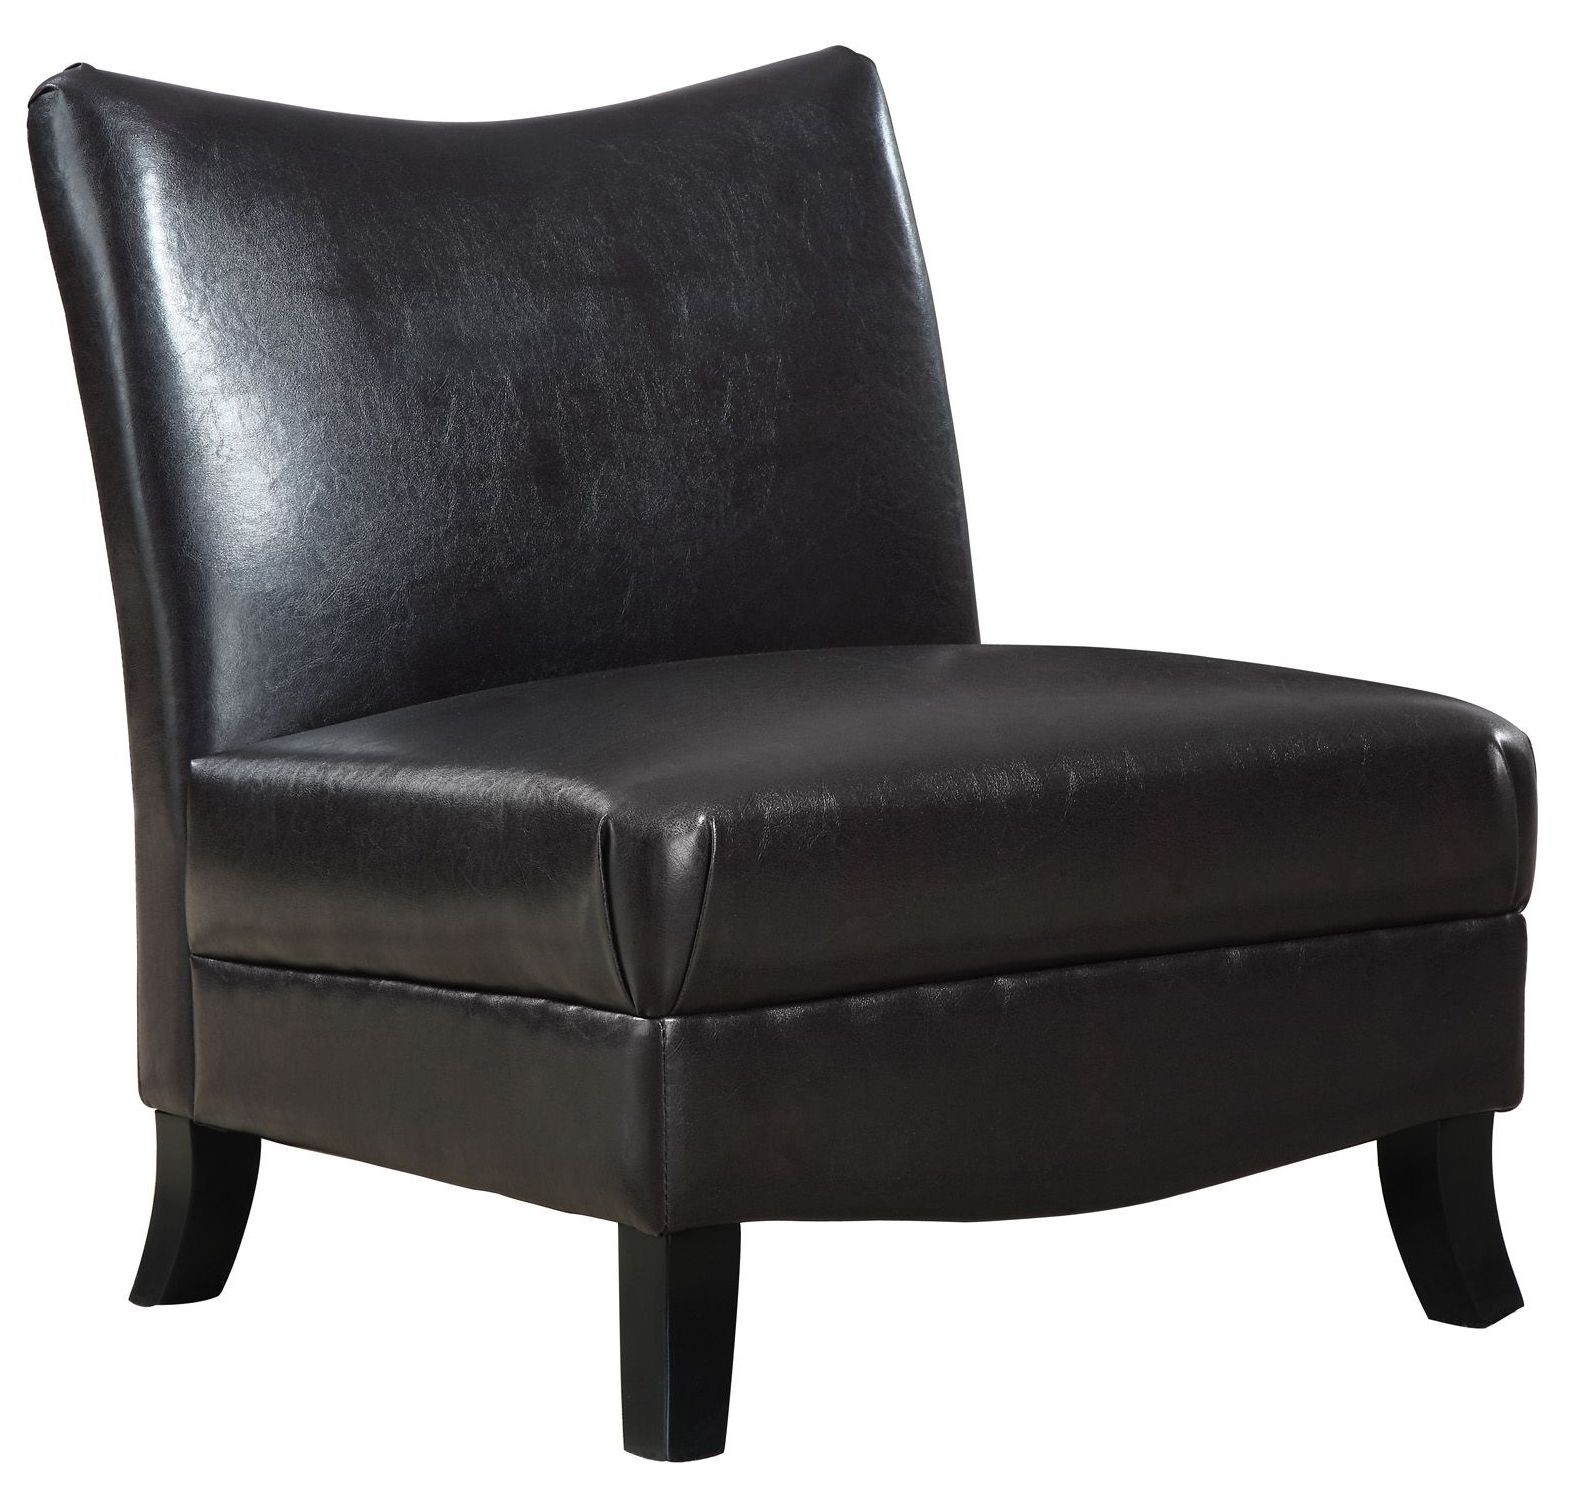 Brown Accent Chairs 8046 Dark Brown Accent Chair From Monarch I 8046